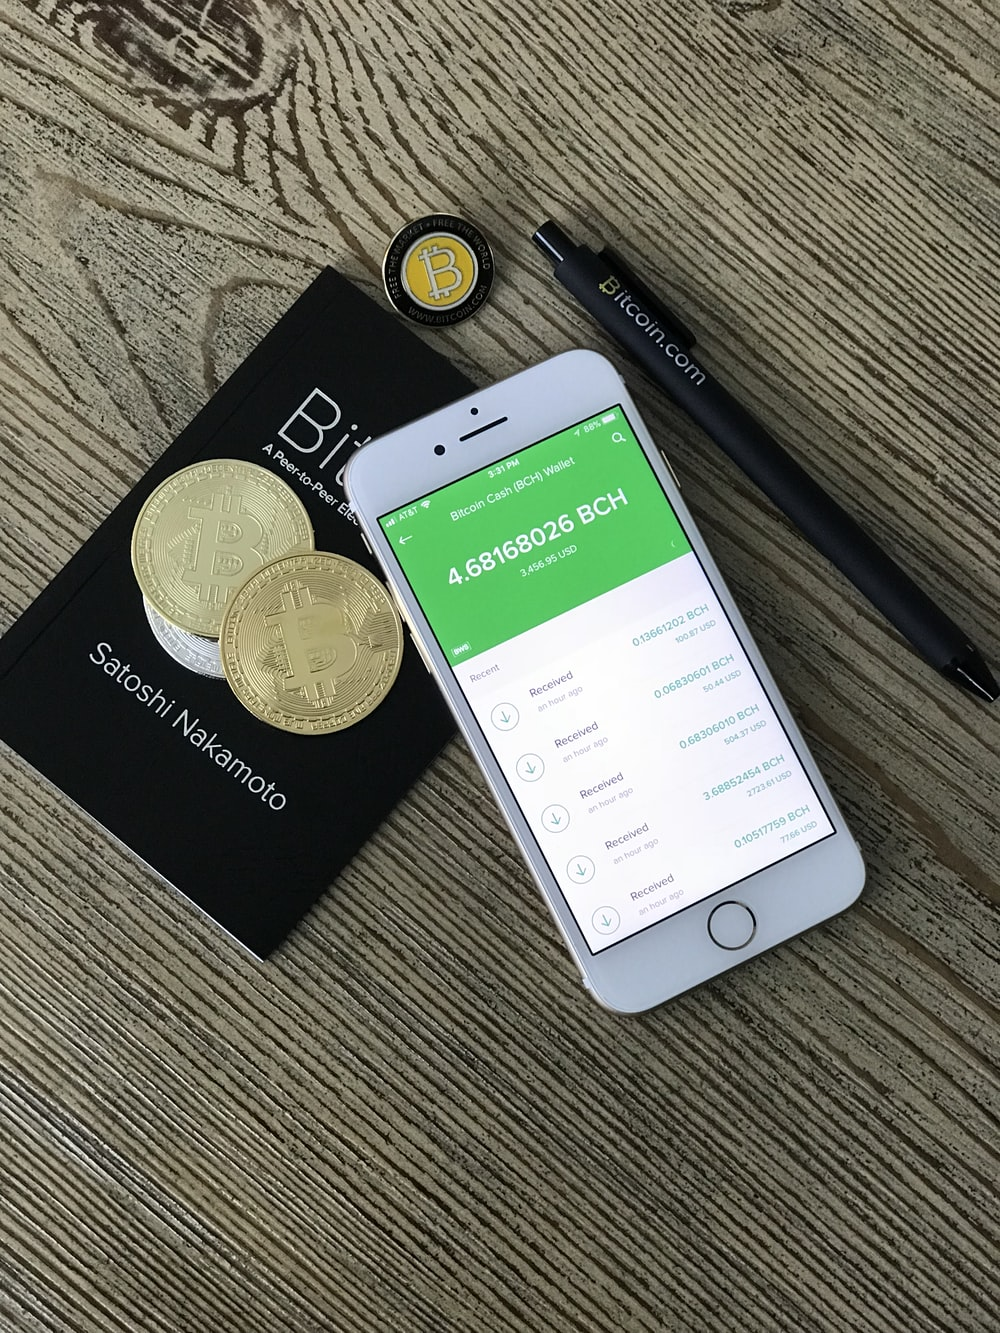 silver iPhone 6 beside two coins